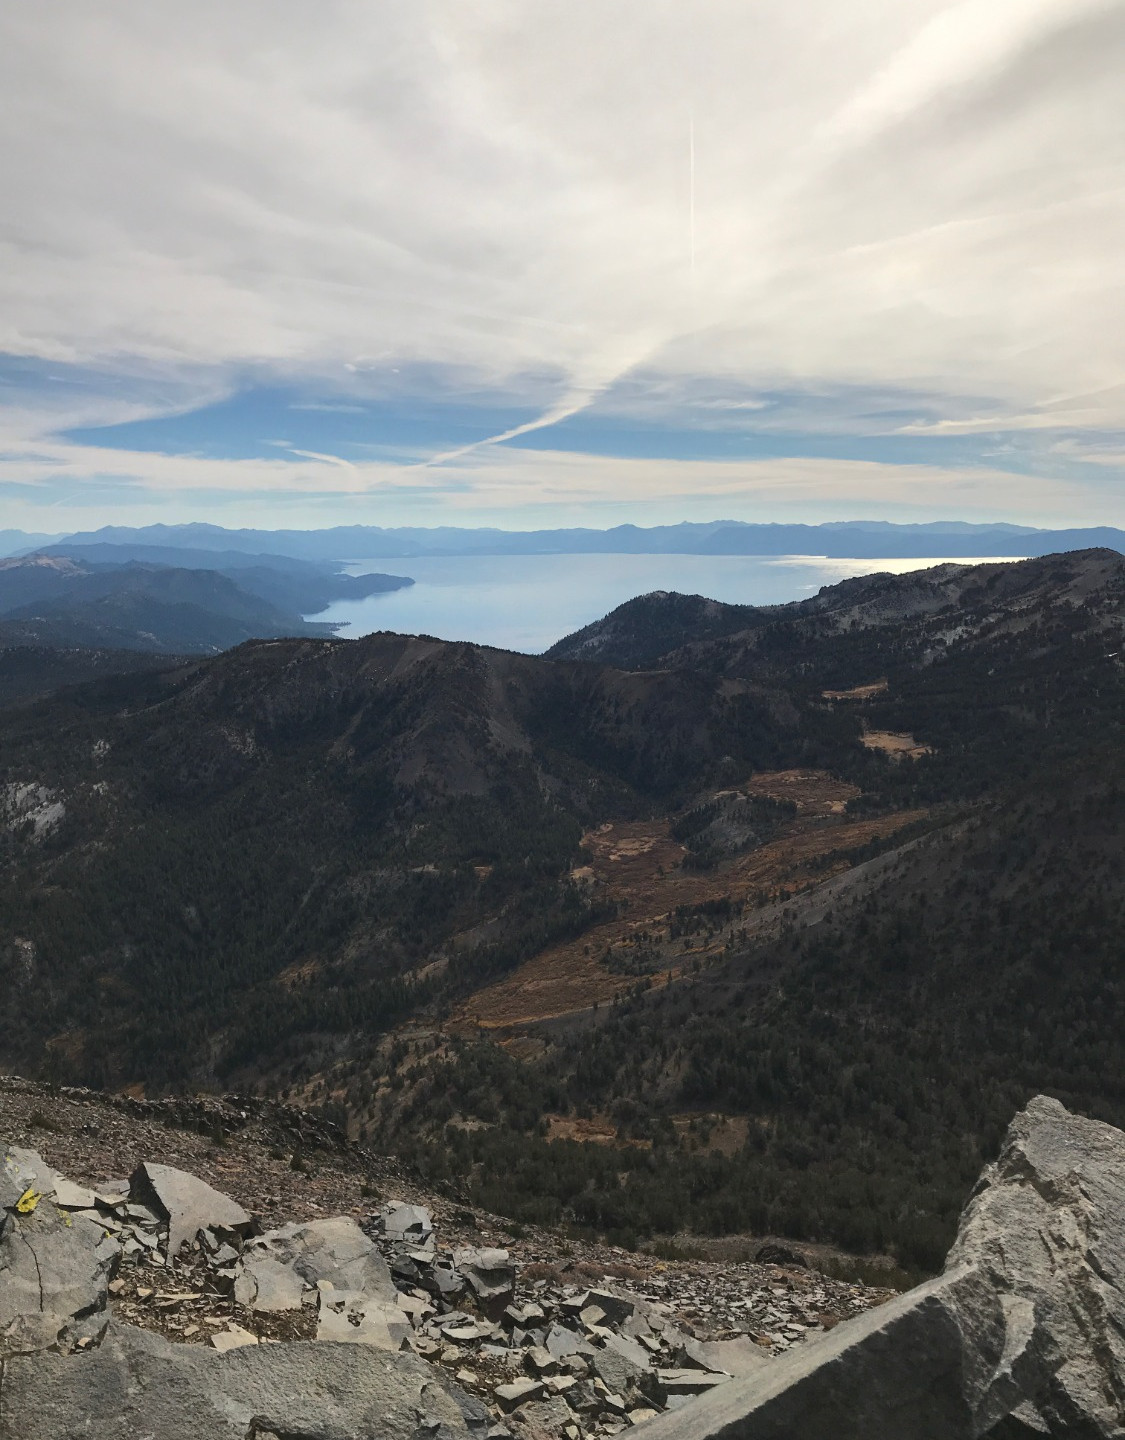 The view from Mt.Rose Summit.